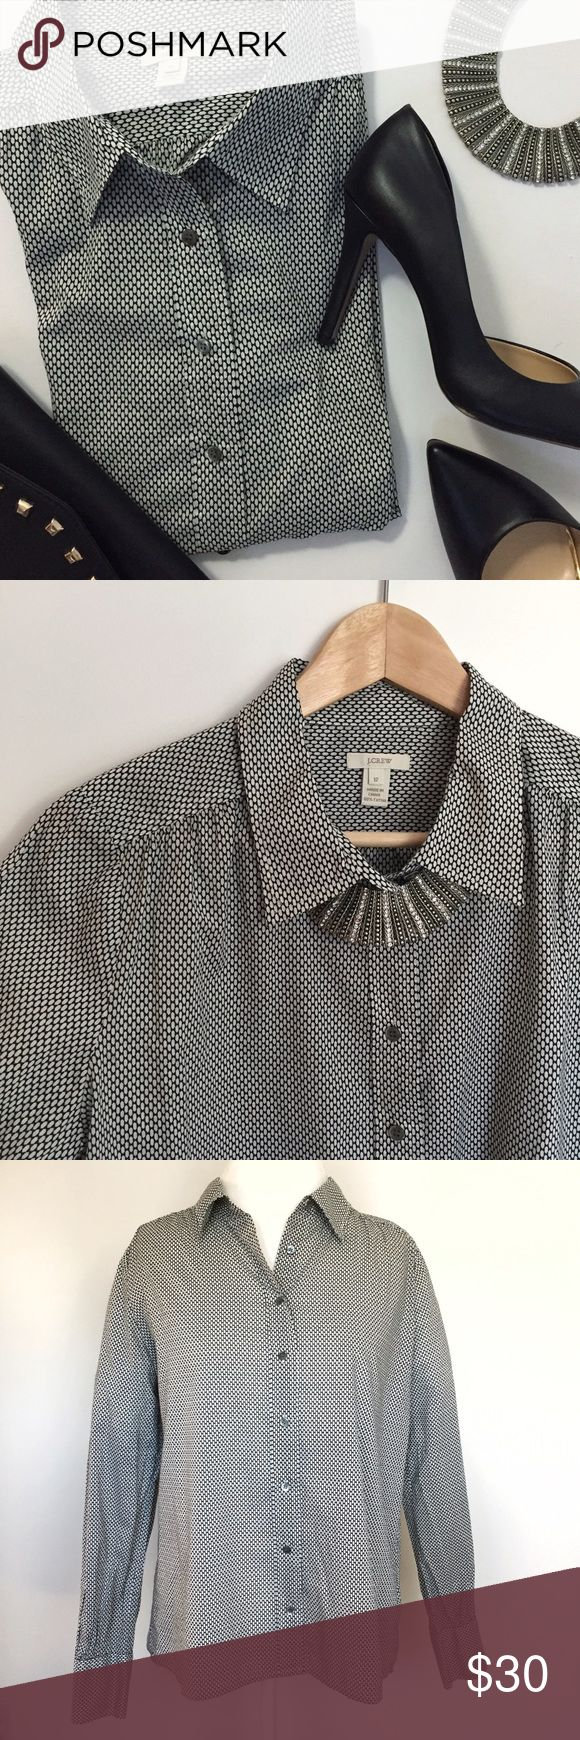 J.Crew black and white long sleeve button blouse • Excellent used condition, no holes / stains / smells • 100% cotton • Size 12 (measurements to follow) J. Crew Tops Button Down Shirts